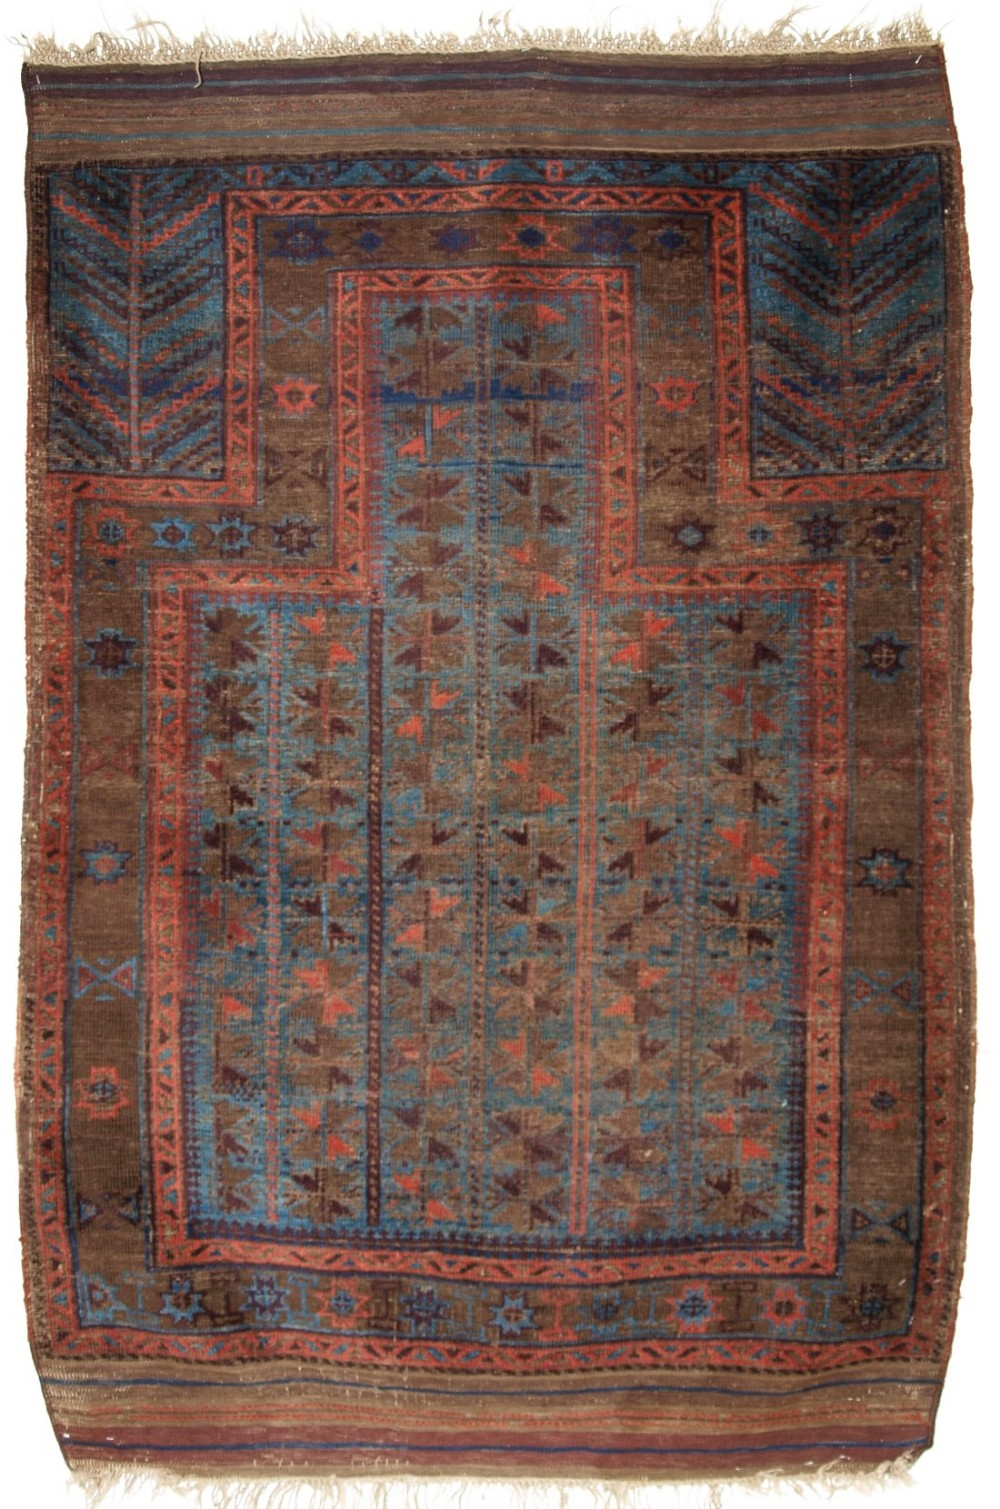 antique baluch blue ground prayer rug mid 19th century